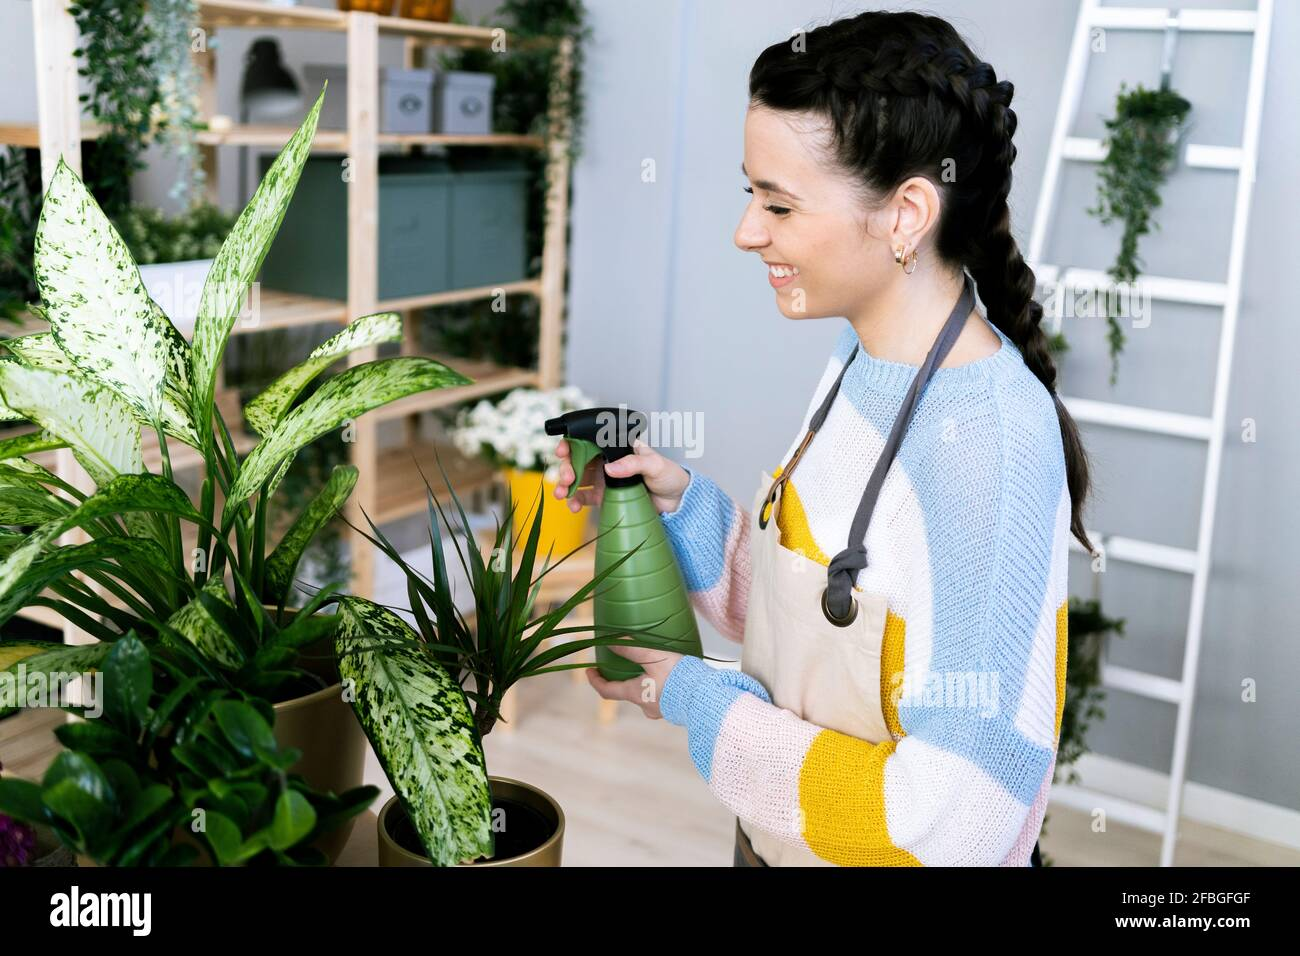 Smiling woman spraying water on plants while working at workshop Stock Photo